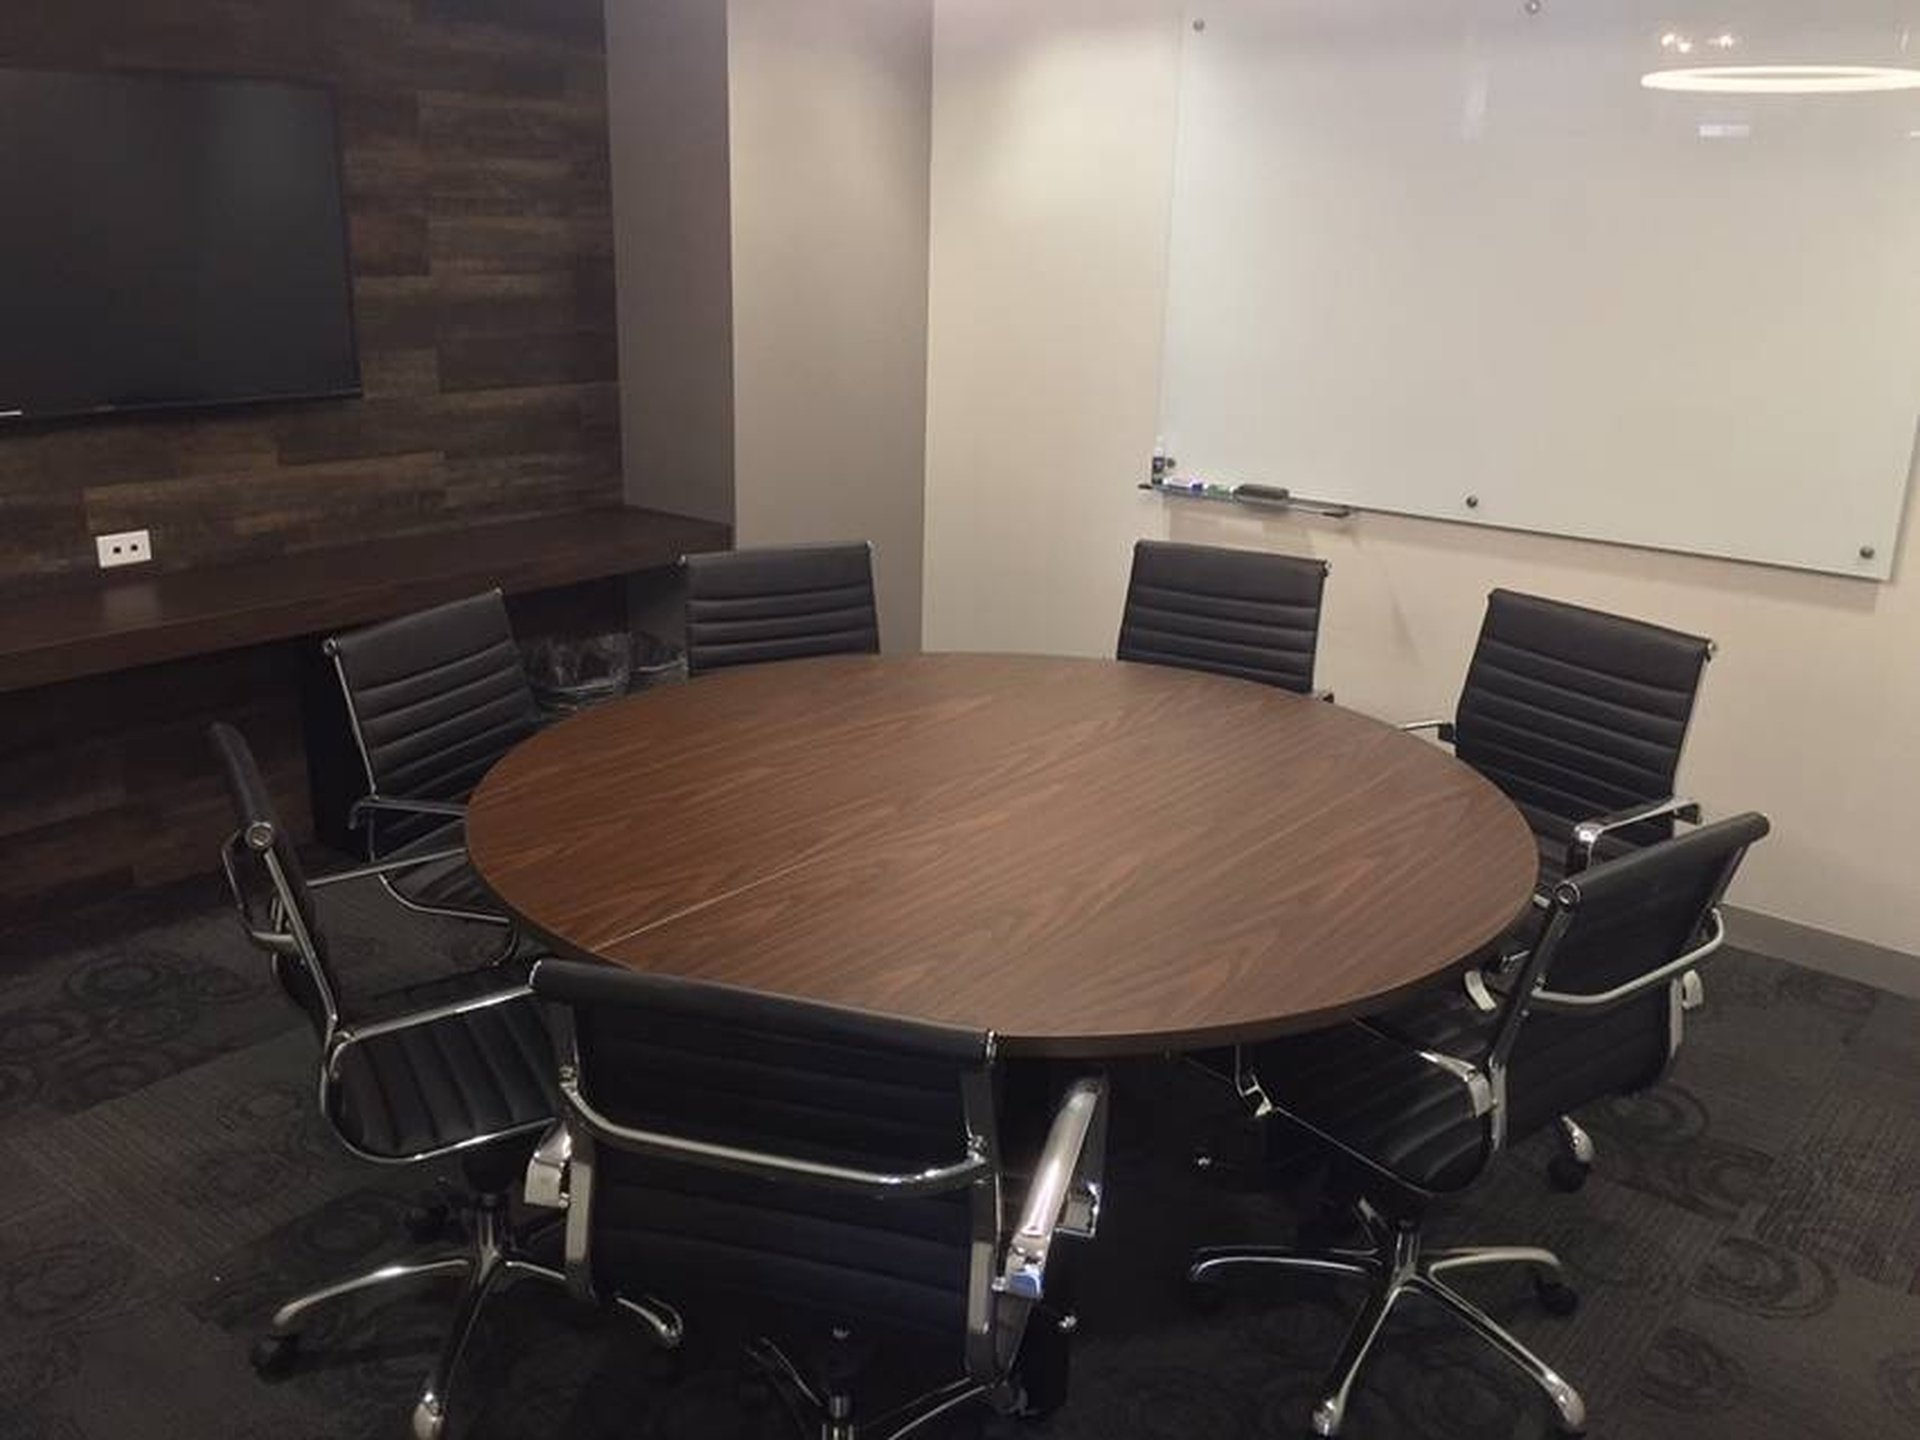 NYC conference rooms Salle de réunion Corporate Suites Round Table Conference Room 20C image 0